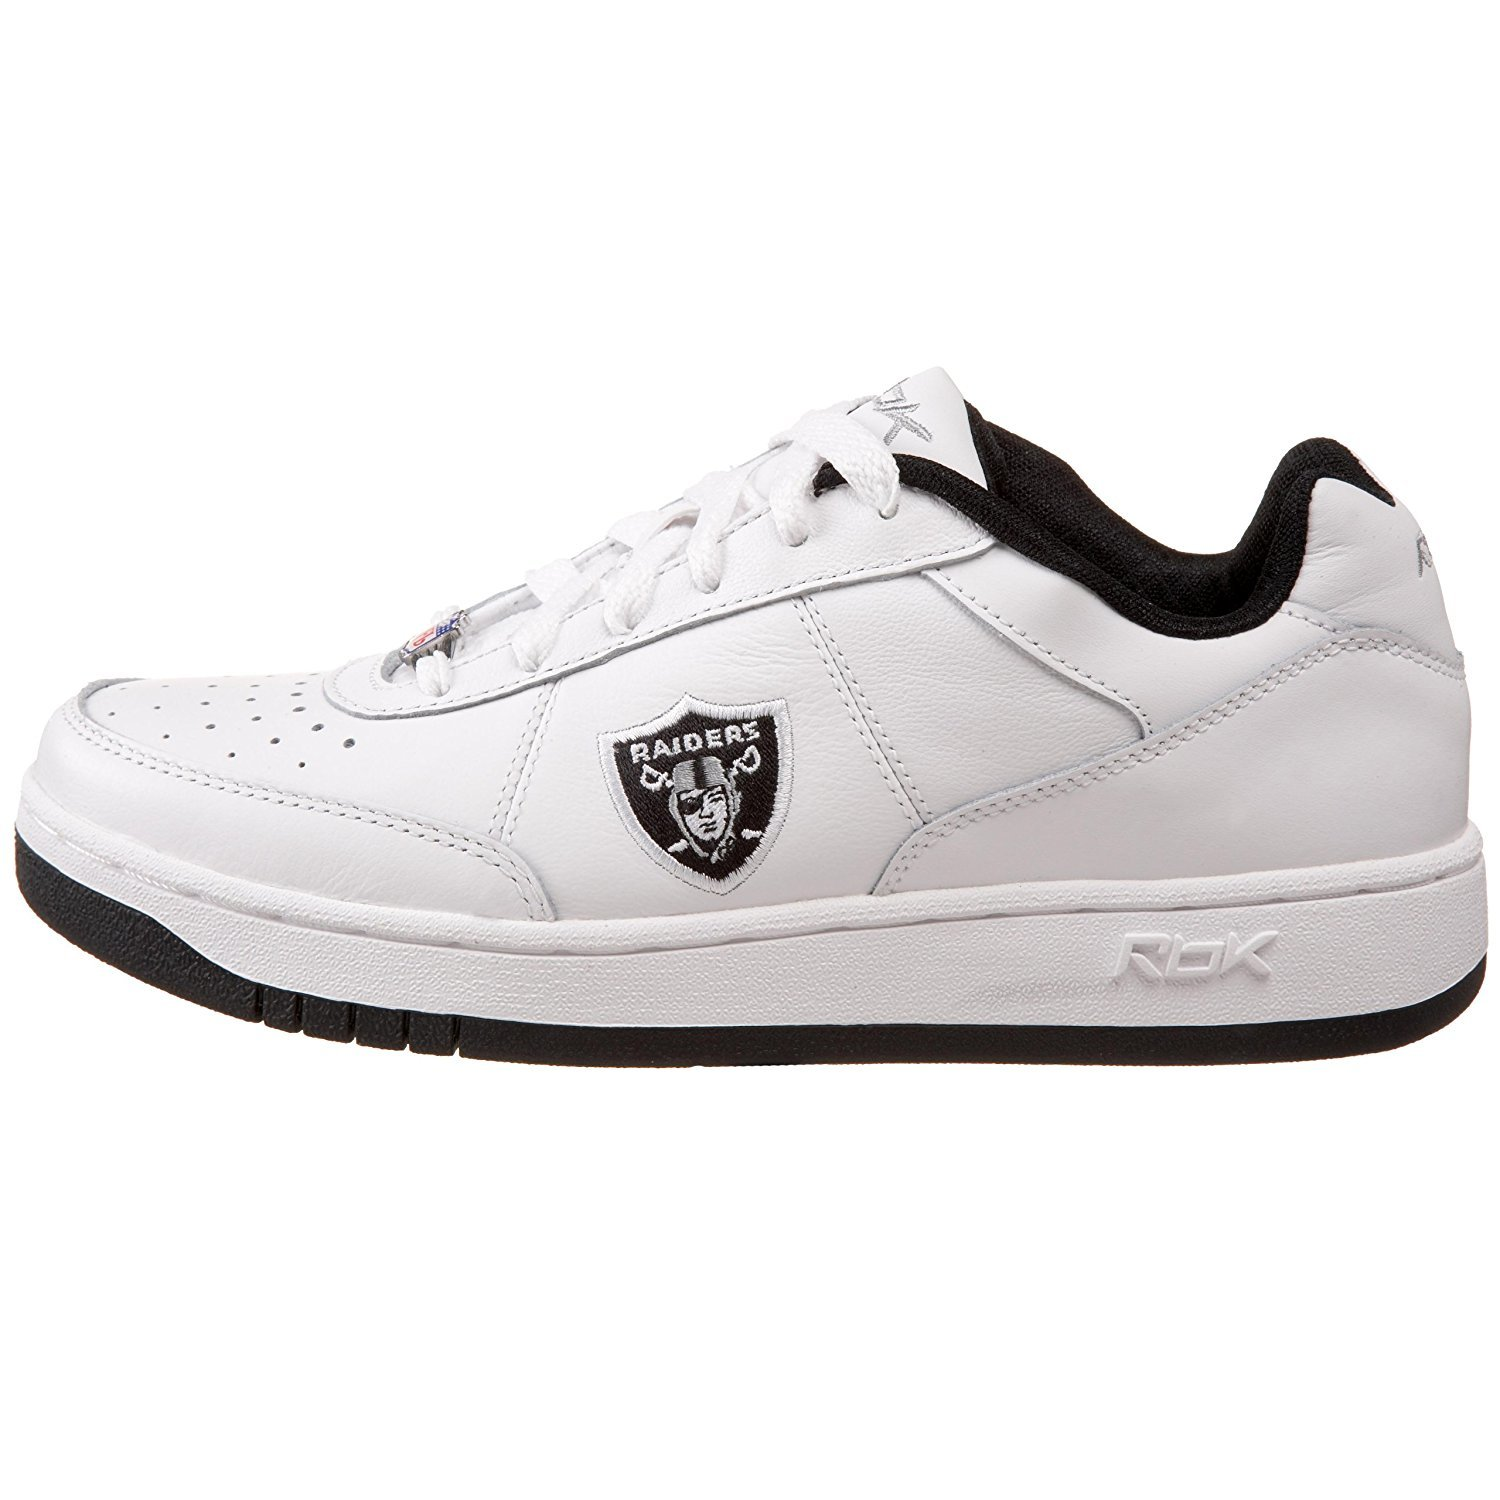 athletic shoe and reebok tennis shoes Shop mens athletic shoes at payless to find the lowest prices on shoes free shipping +$25, free returns at any payless store payless shoesource.